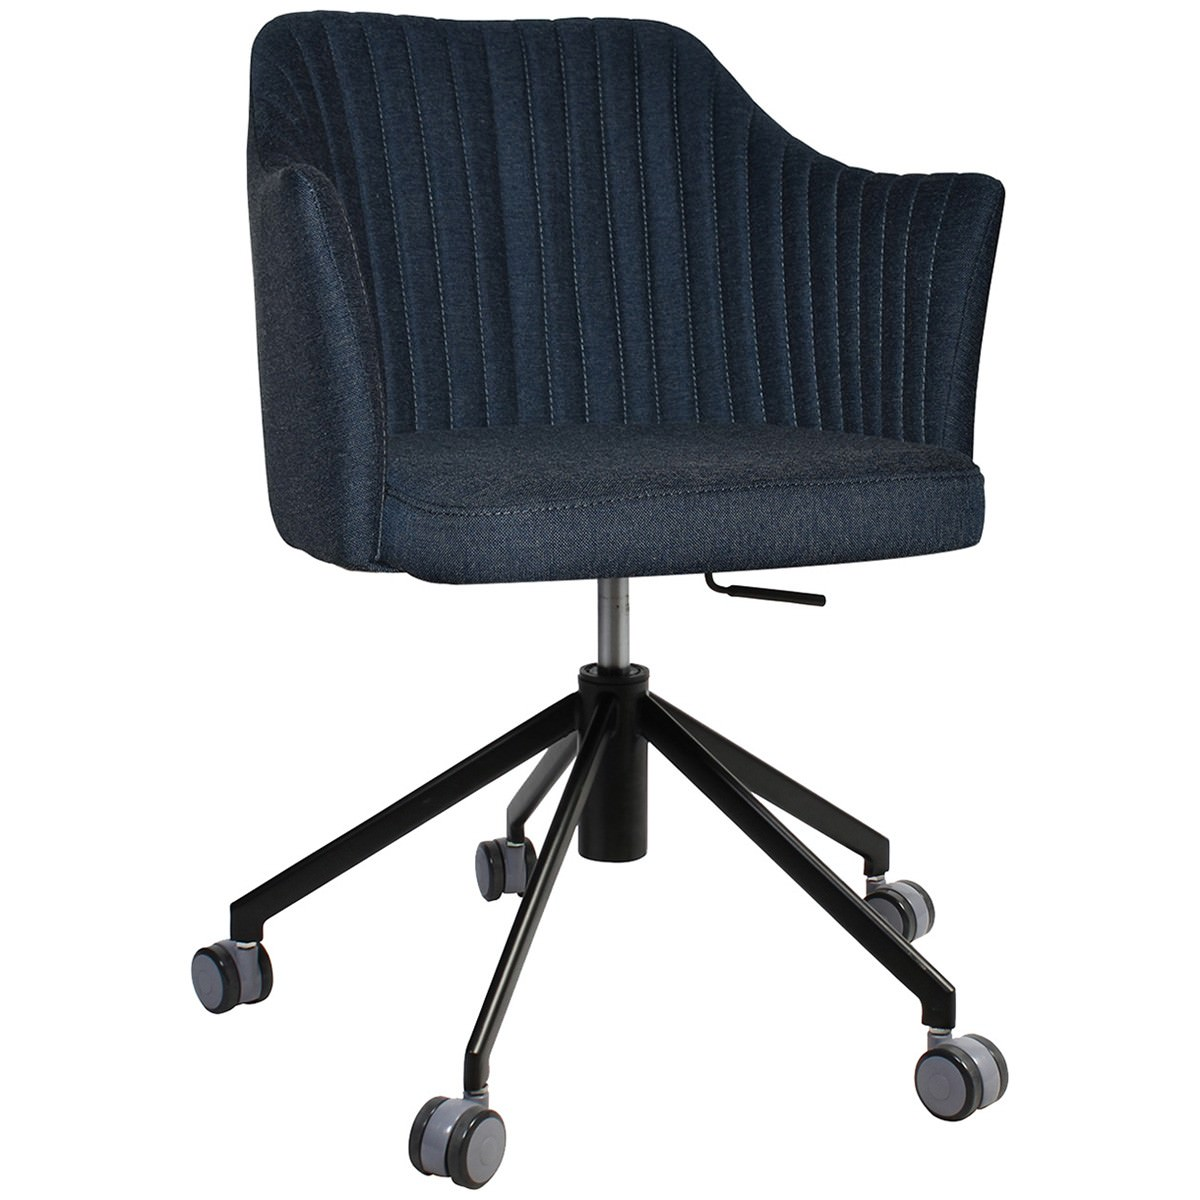 Coogee Commercial Grade Gravity Fabric Gas Lift Office Armchair, Navy / Black